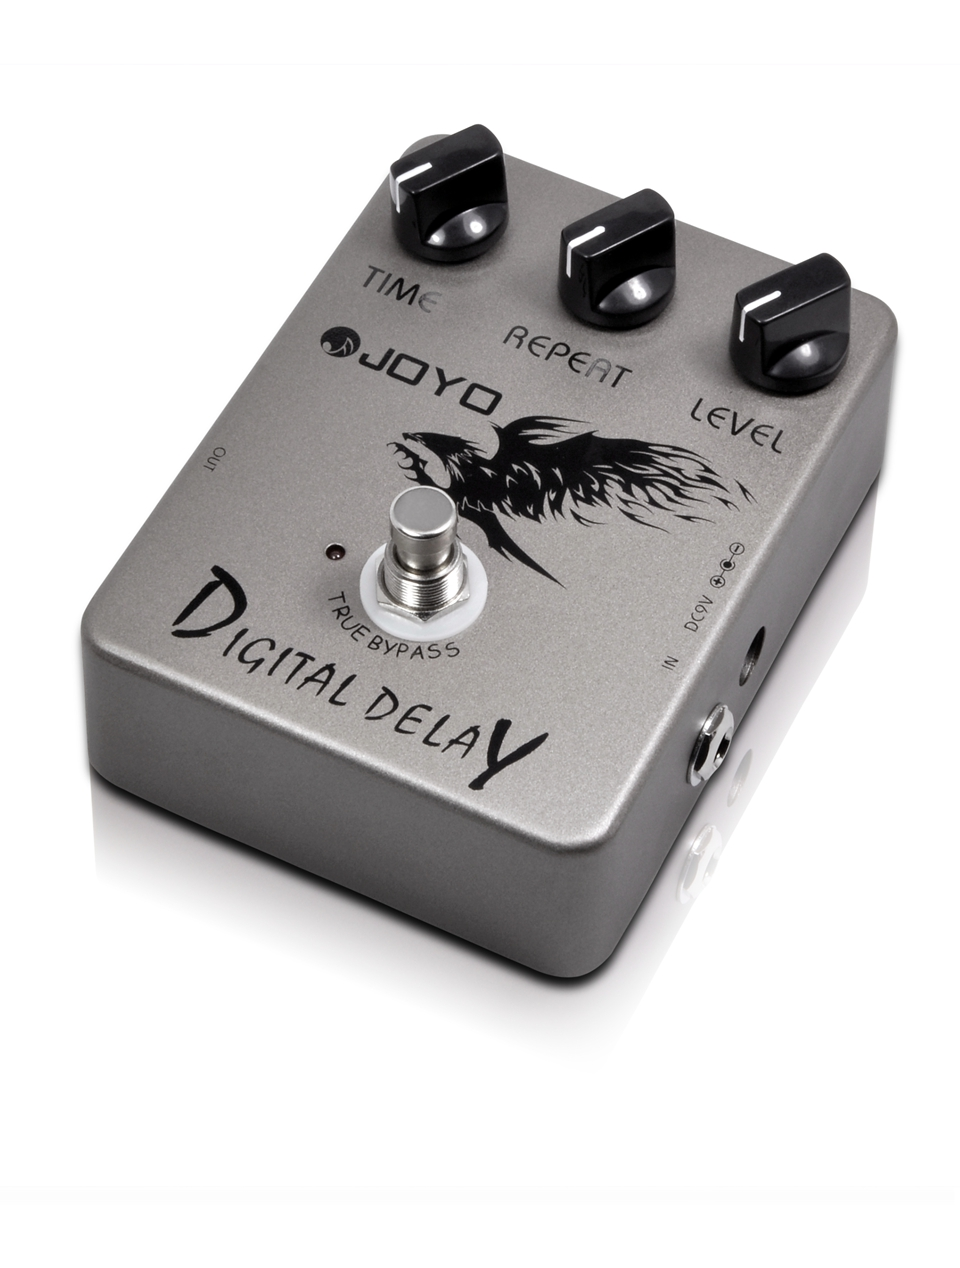 JOYO Digital Delay Electric Guitar Effect Pedal Time Delay Repeat Level Adjustment Close To Analog Delay 25ms-200ms Delay Range two way regulating lever acoustic classical electric guitar neck truss rod adjustment core guitar parts